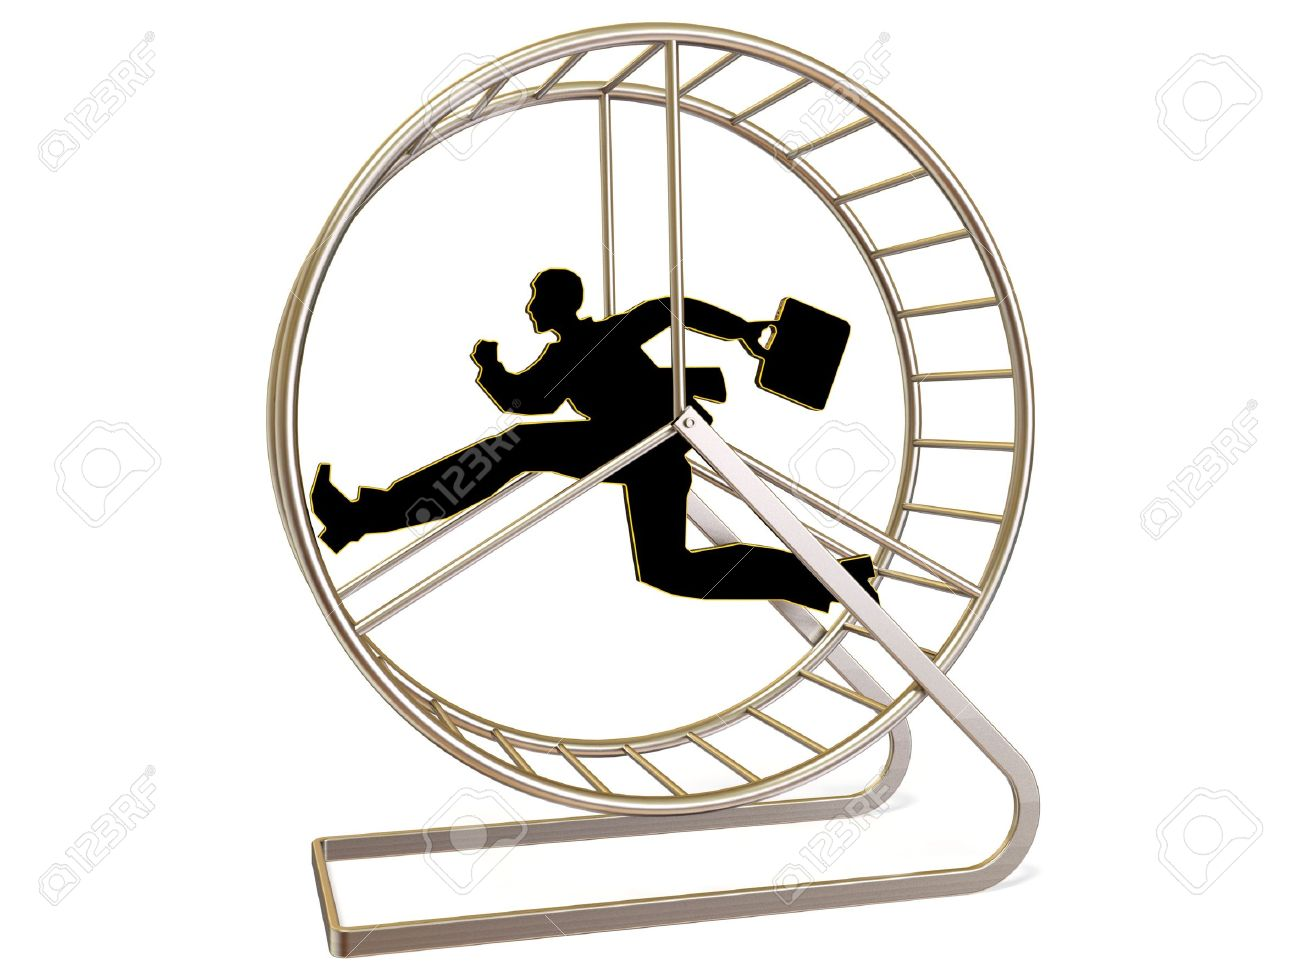 man on hamster wheel clipart - Clipground